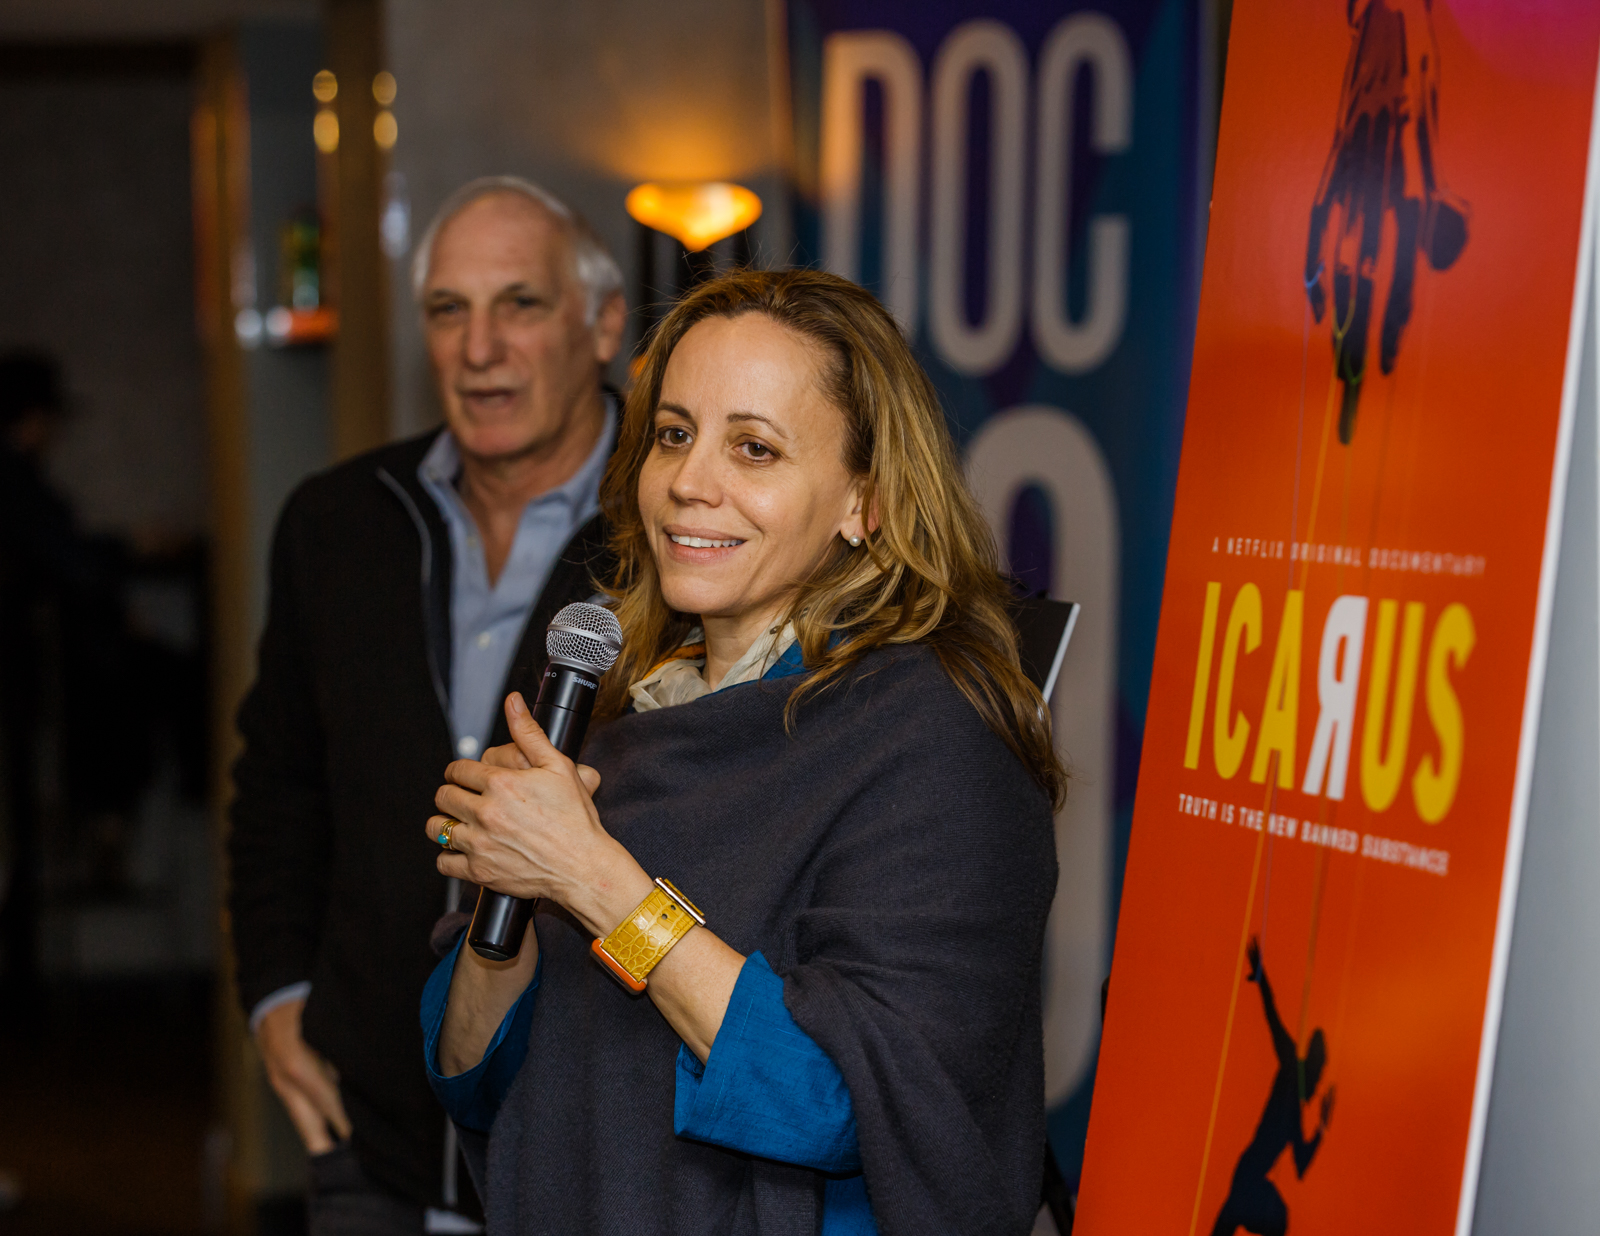 180222-dinner-and-docs-icarus-028.jpg